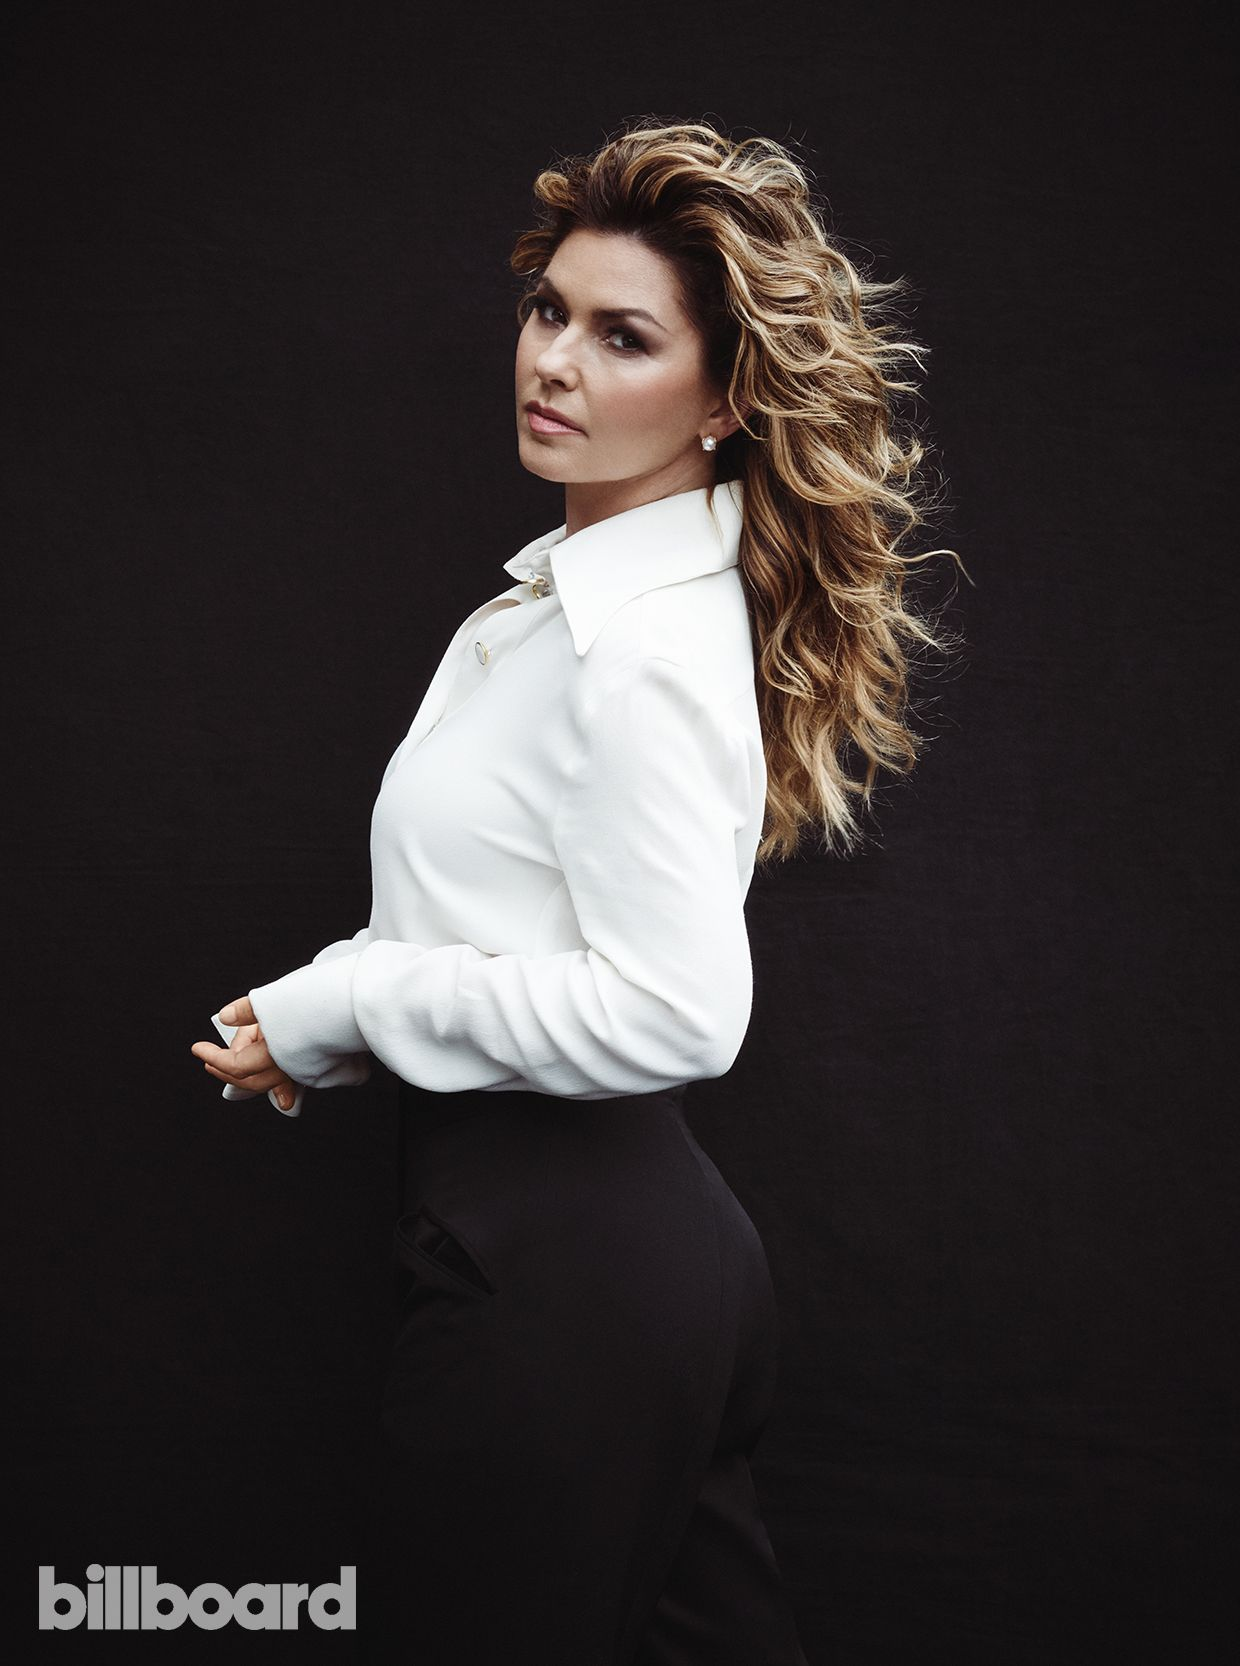 Women In Music 'Icon' Shania Twain on Her 'Triumphant' New